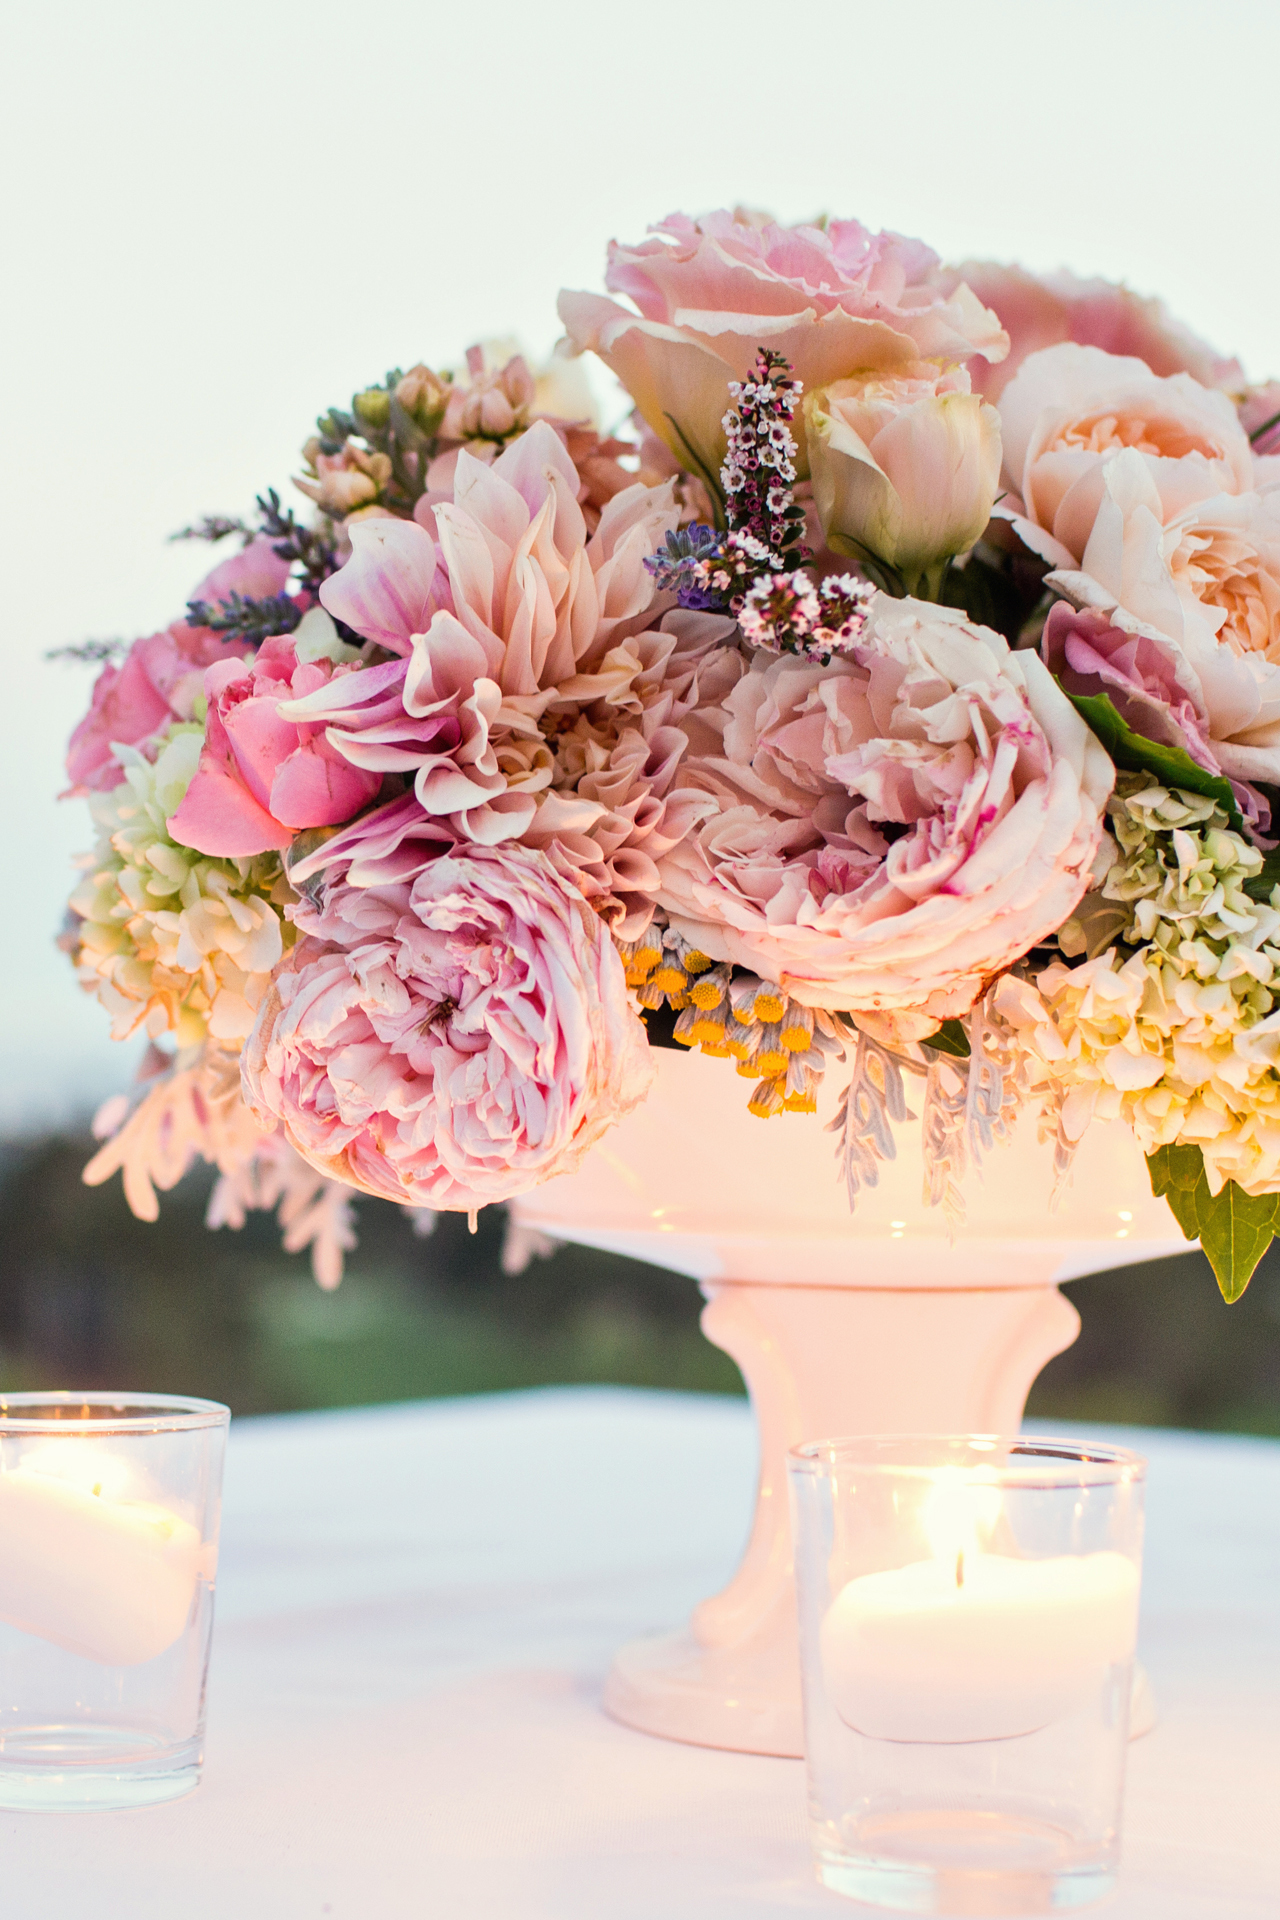 Flowers & Decor, white, yellow, pink, Centerpieces, Garden, Roses, Cream, Coral, Violet, Pastel, Jeanne johnhan